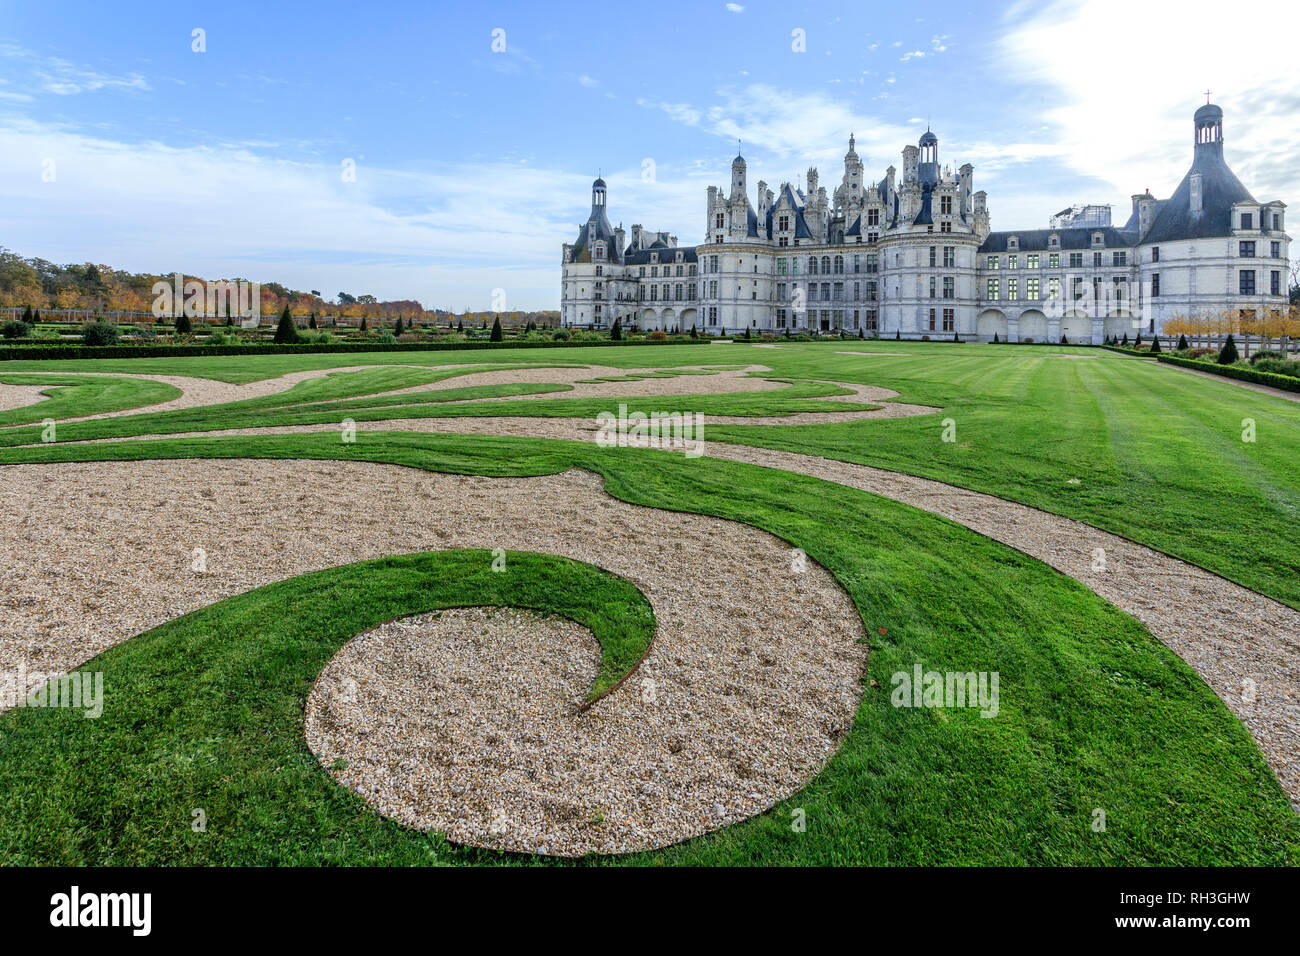 Fleur Jardin France Loir Et Cher Chambord Chambord Castle The French Formal